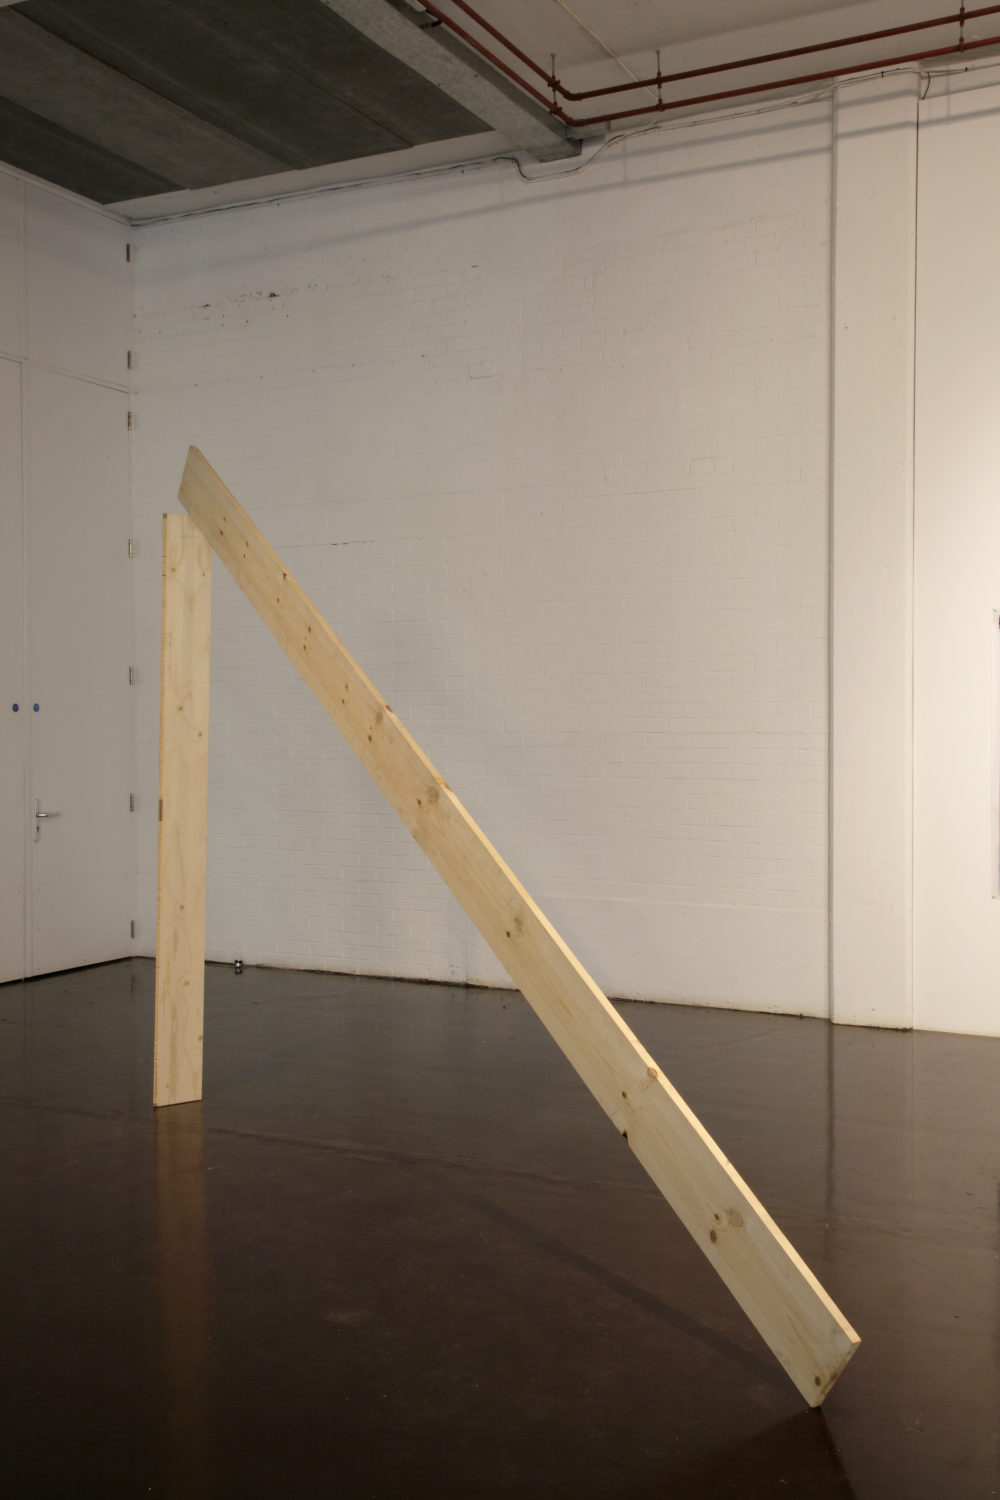 Installation view of Part-ilha, A River Ain't Too Much to Love (2011). A wooden plank stands vertically, and another leans against it.